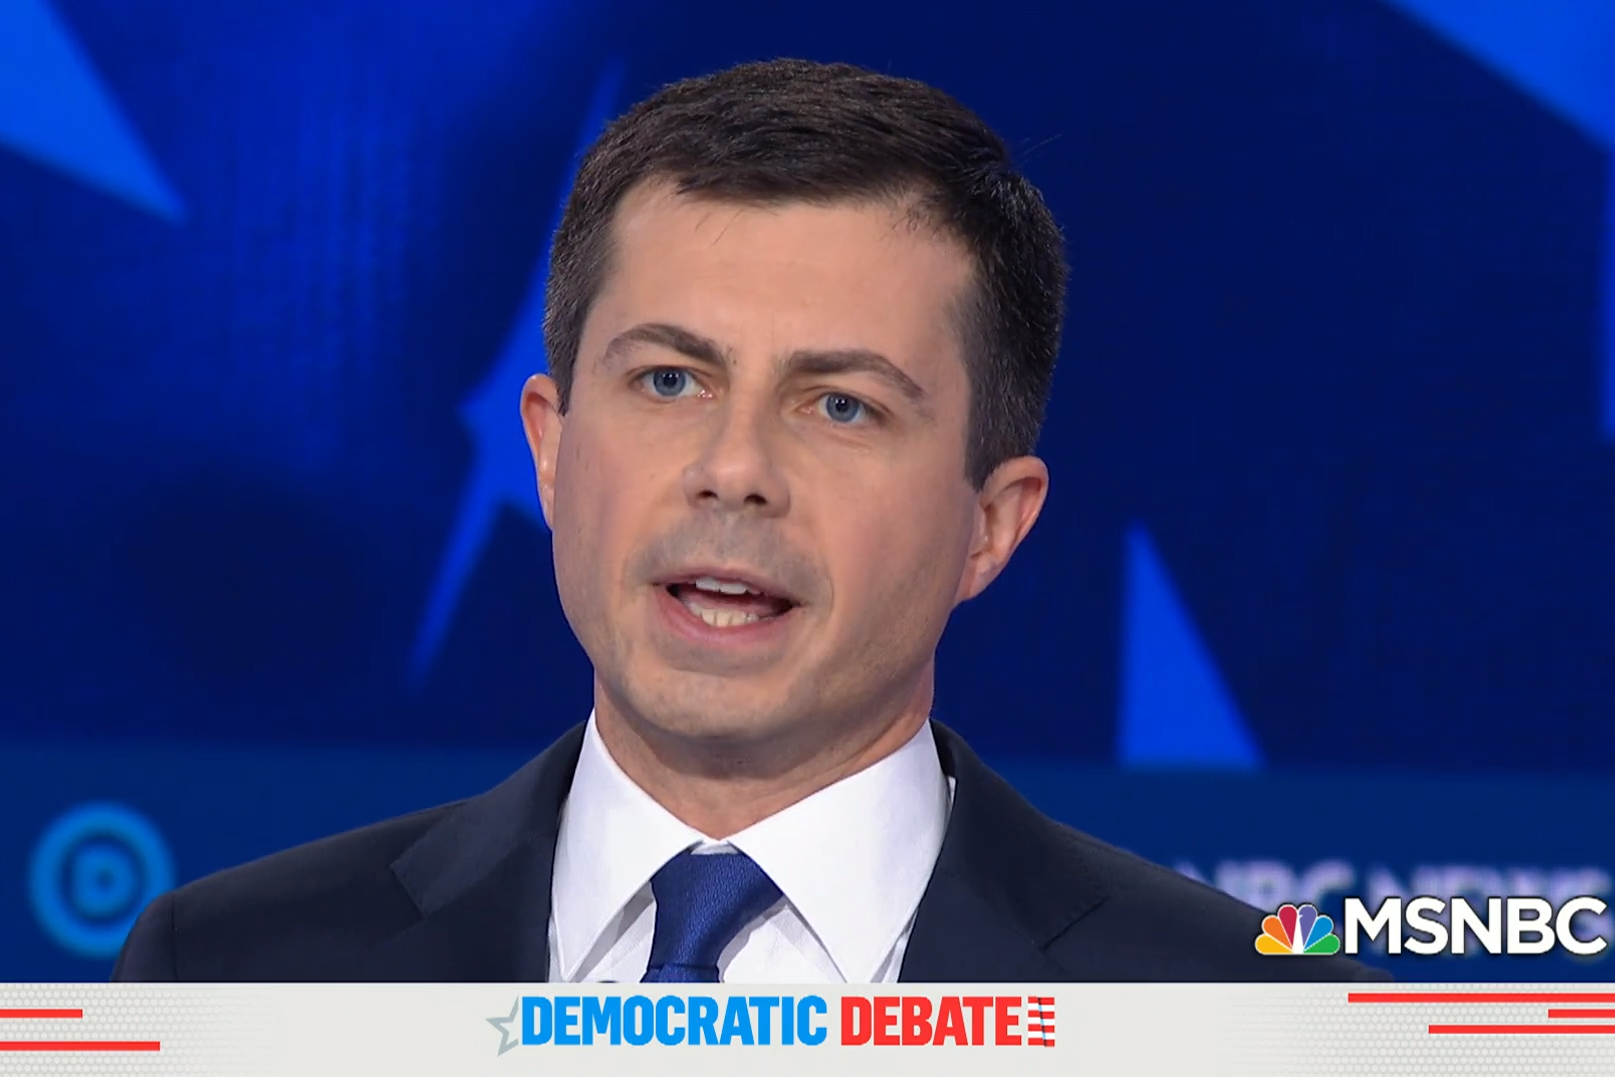 A screenshot of Pete Buttigieg at the Nov. 20 MSNBC Democratic Presidential Debate.